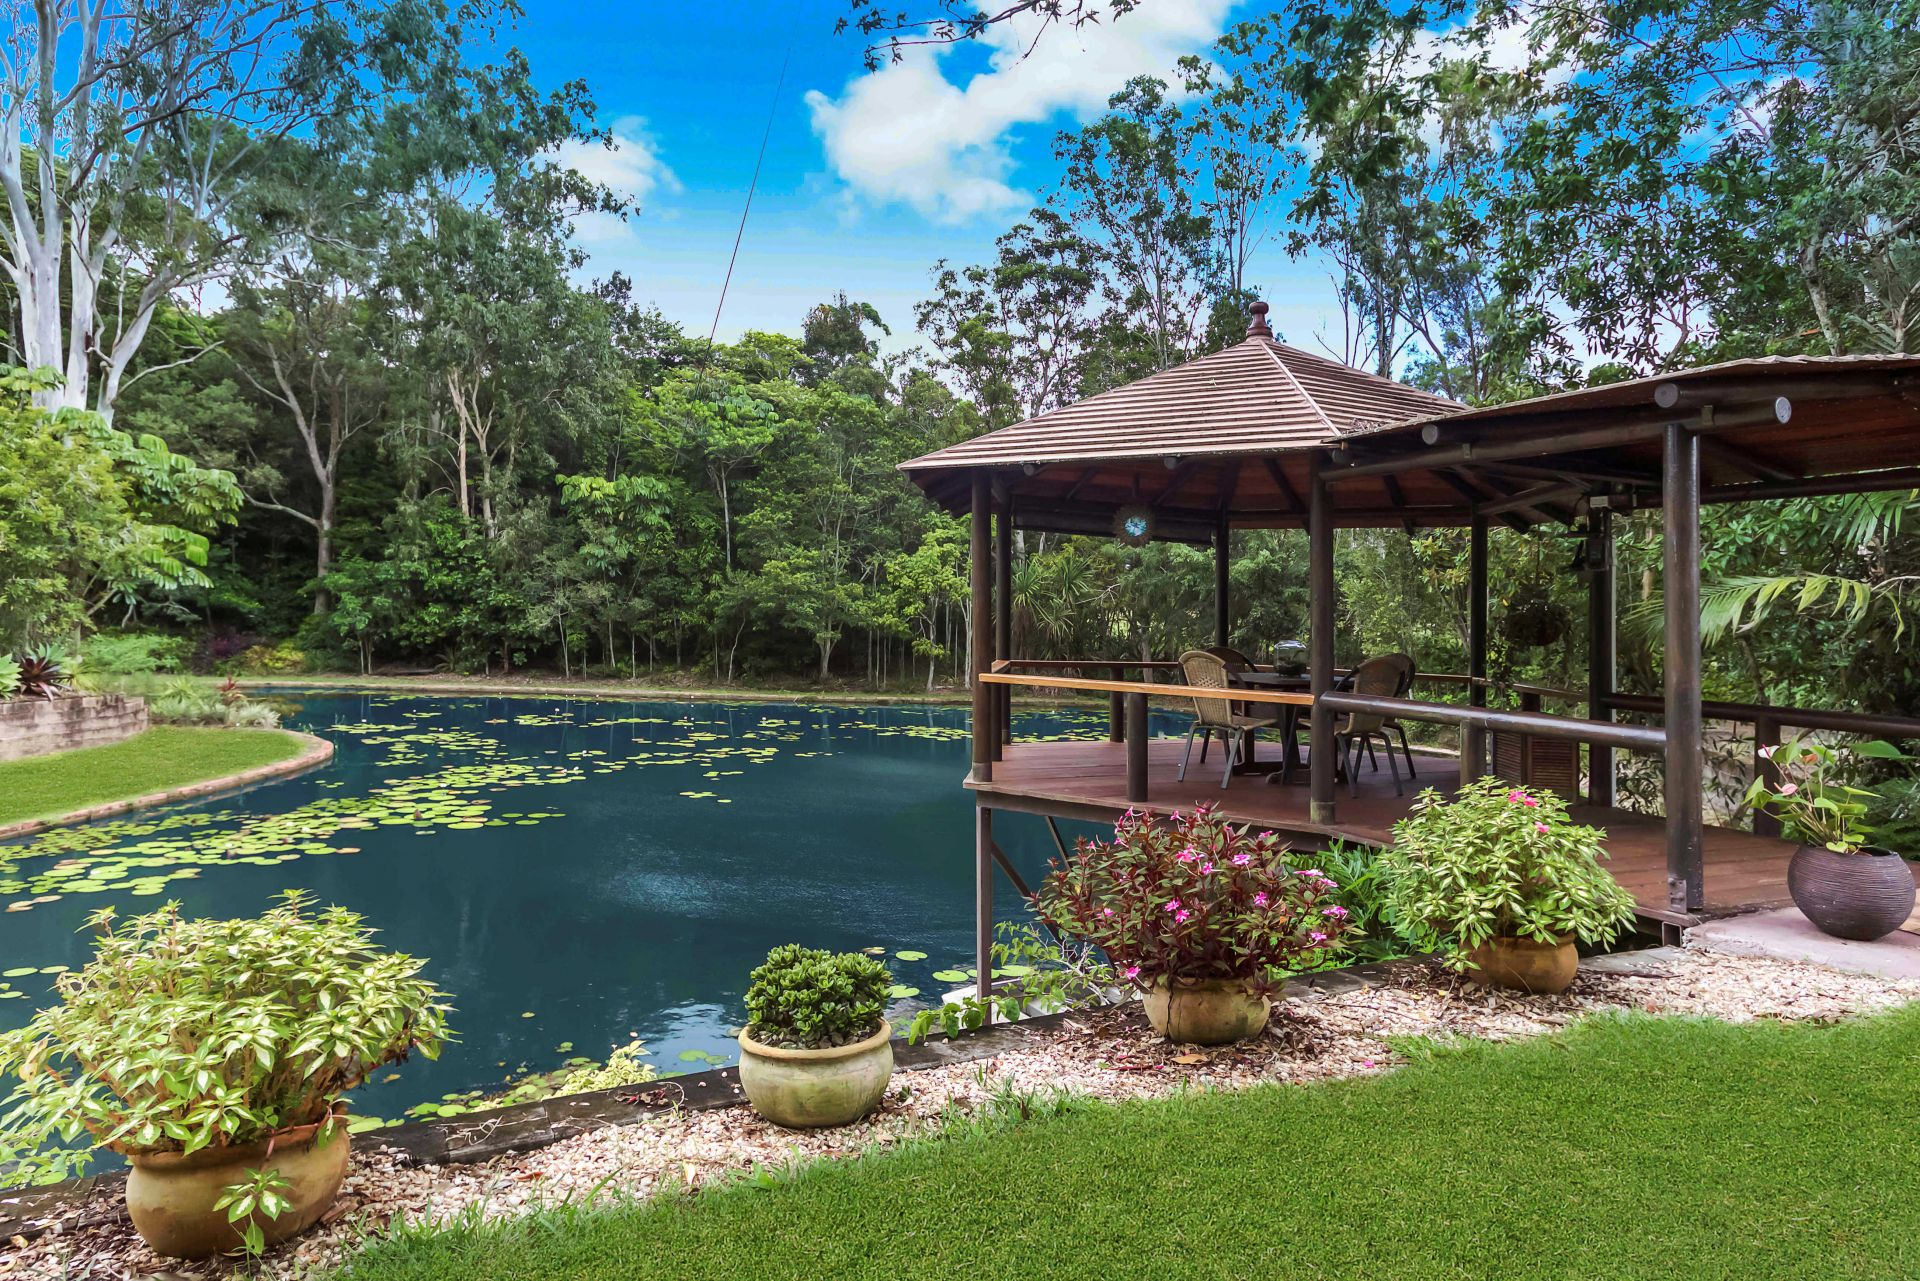 Additional photo for property listing at Idyllic tablelands rainforest retreat with breathtaking grounds   Queensland,4883 Australië